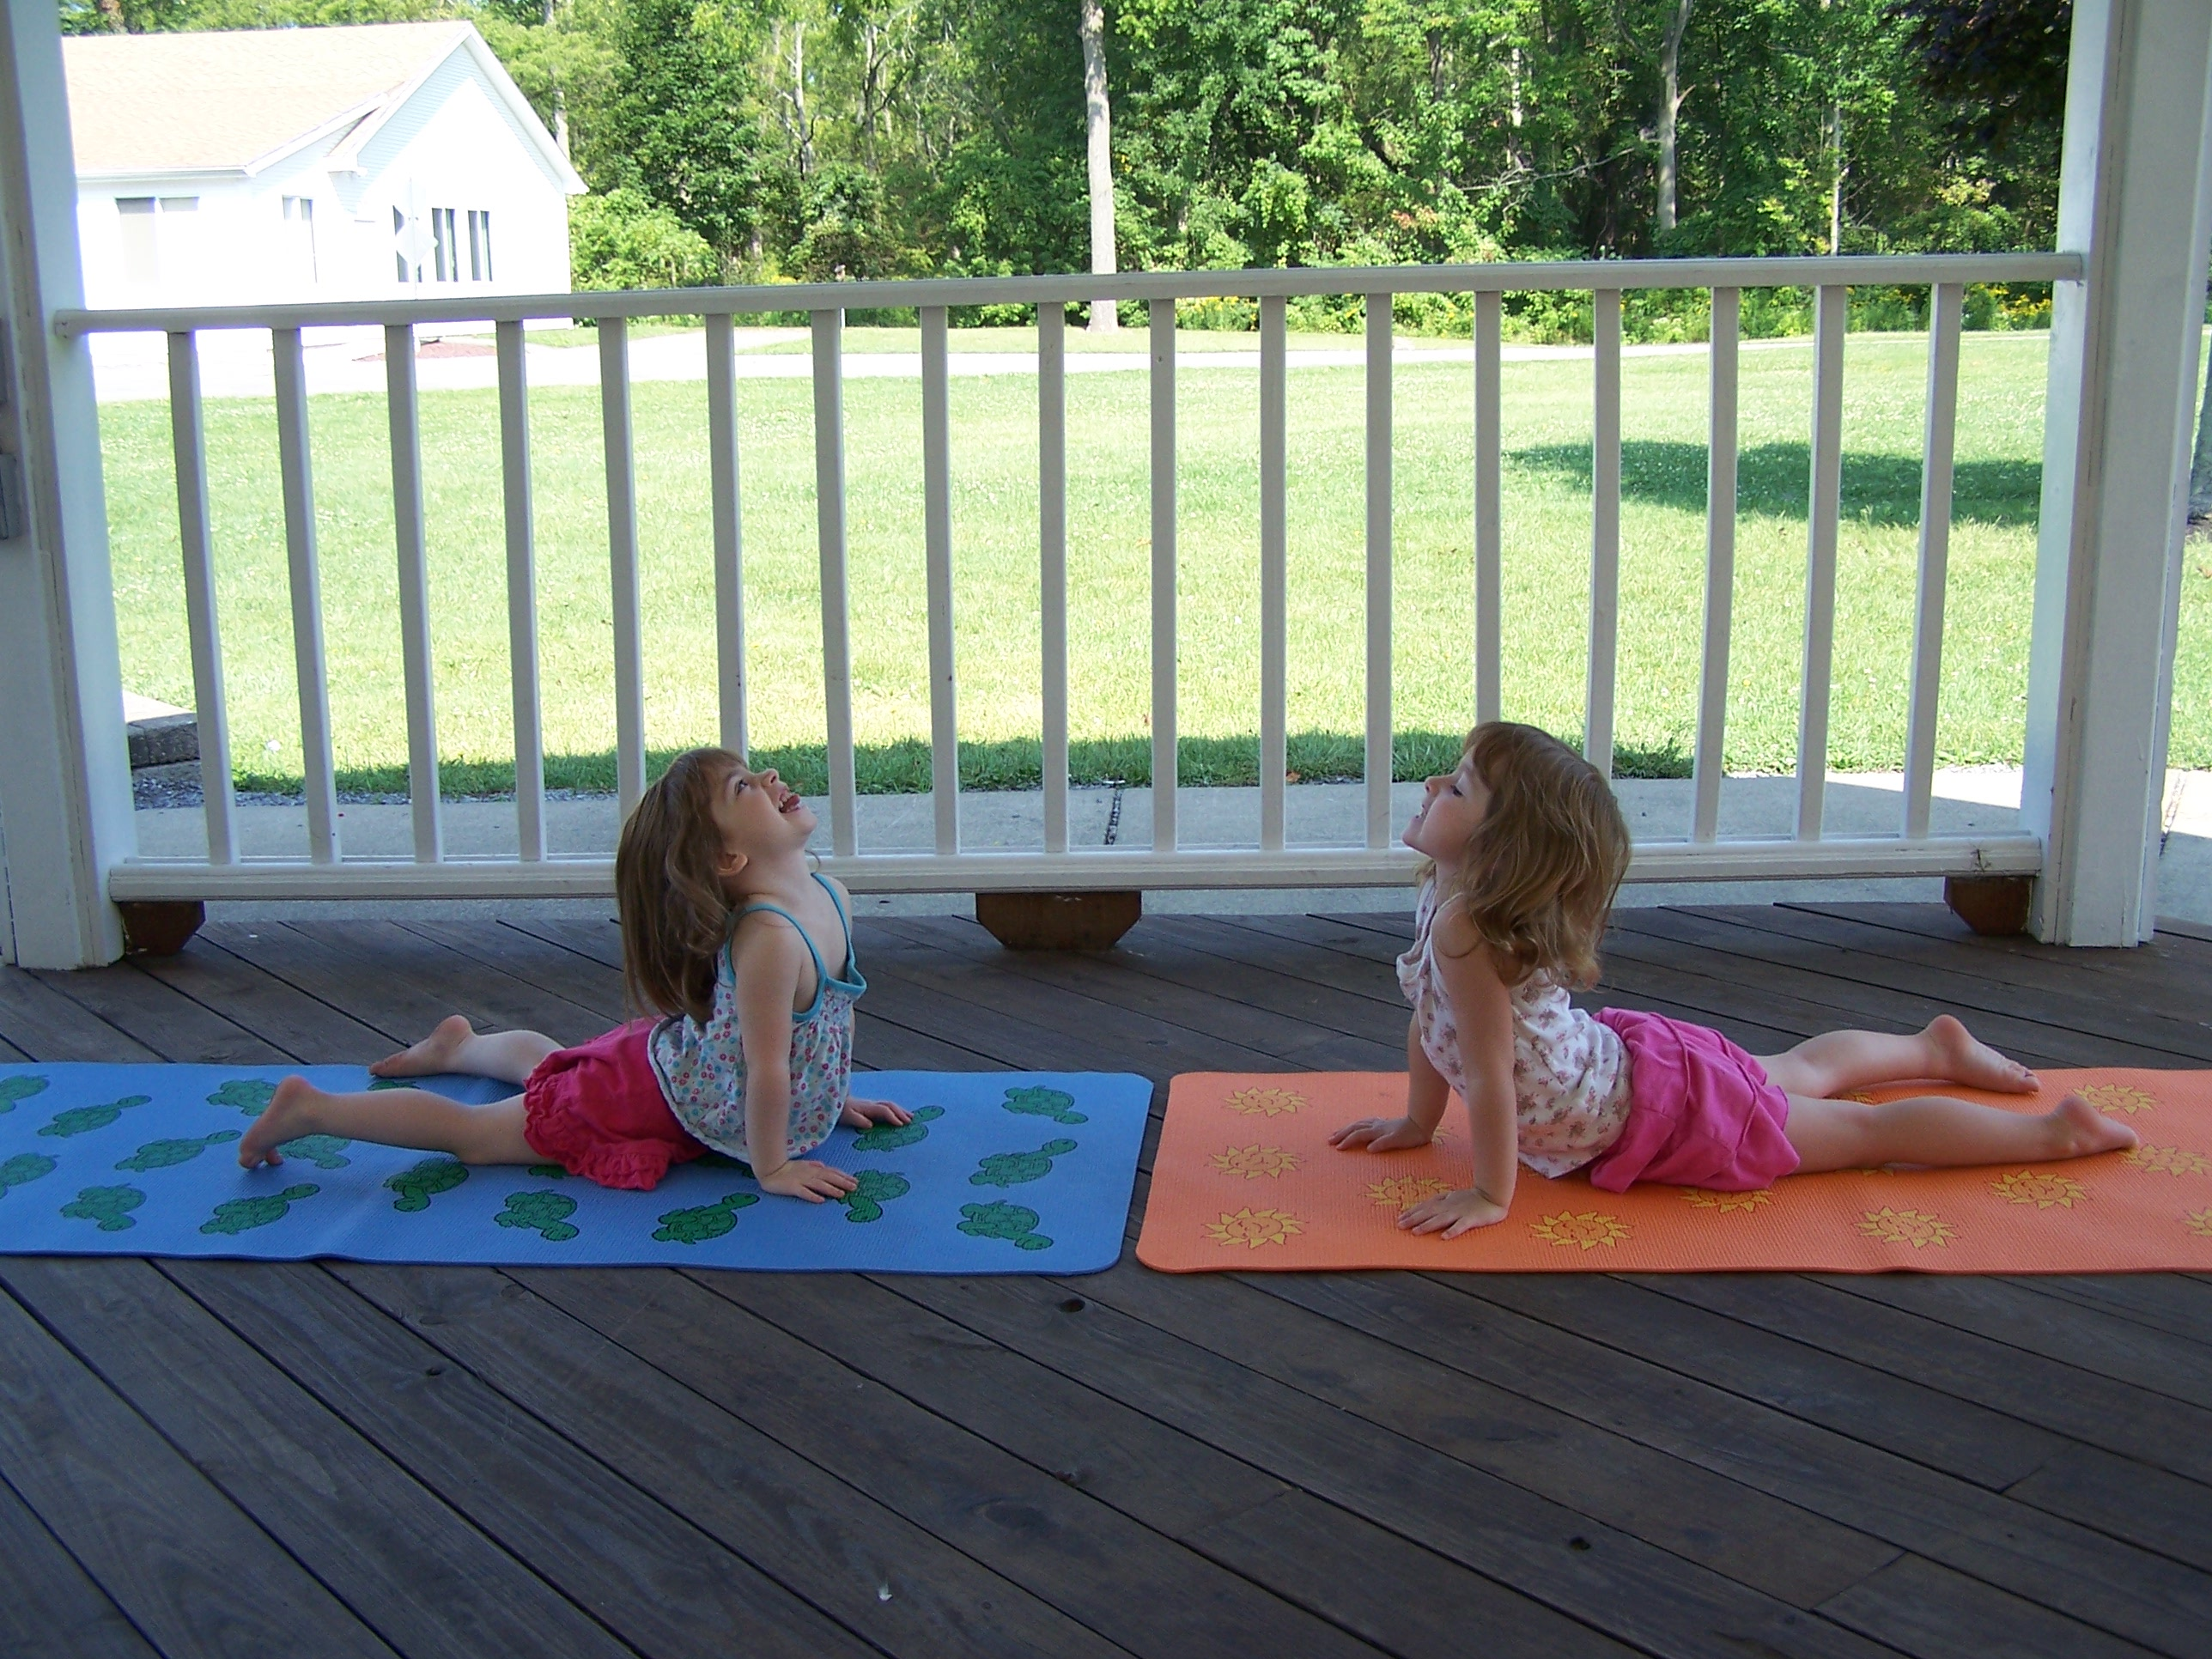 Iris Leatherbarrow, left, and her sister, Mica, pictured in the cobra yoga pose, often help their mother, Julie, teach her Budding Tree Yoga classes. (Julie Leatherbarrow)